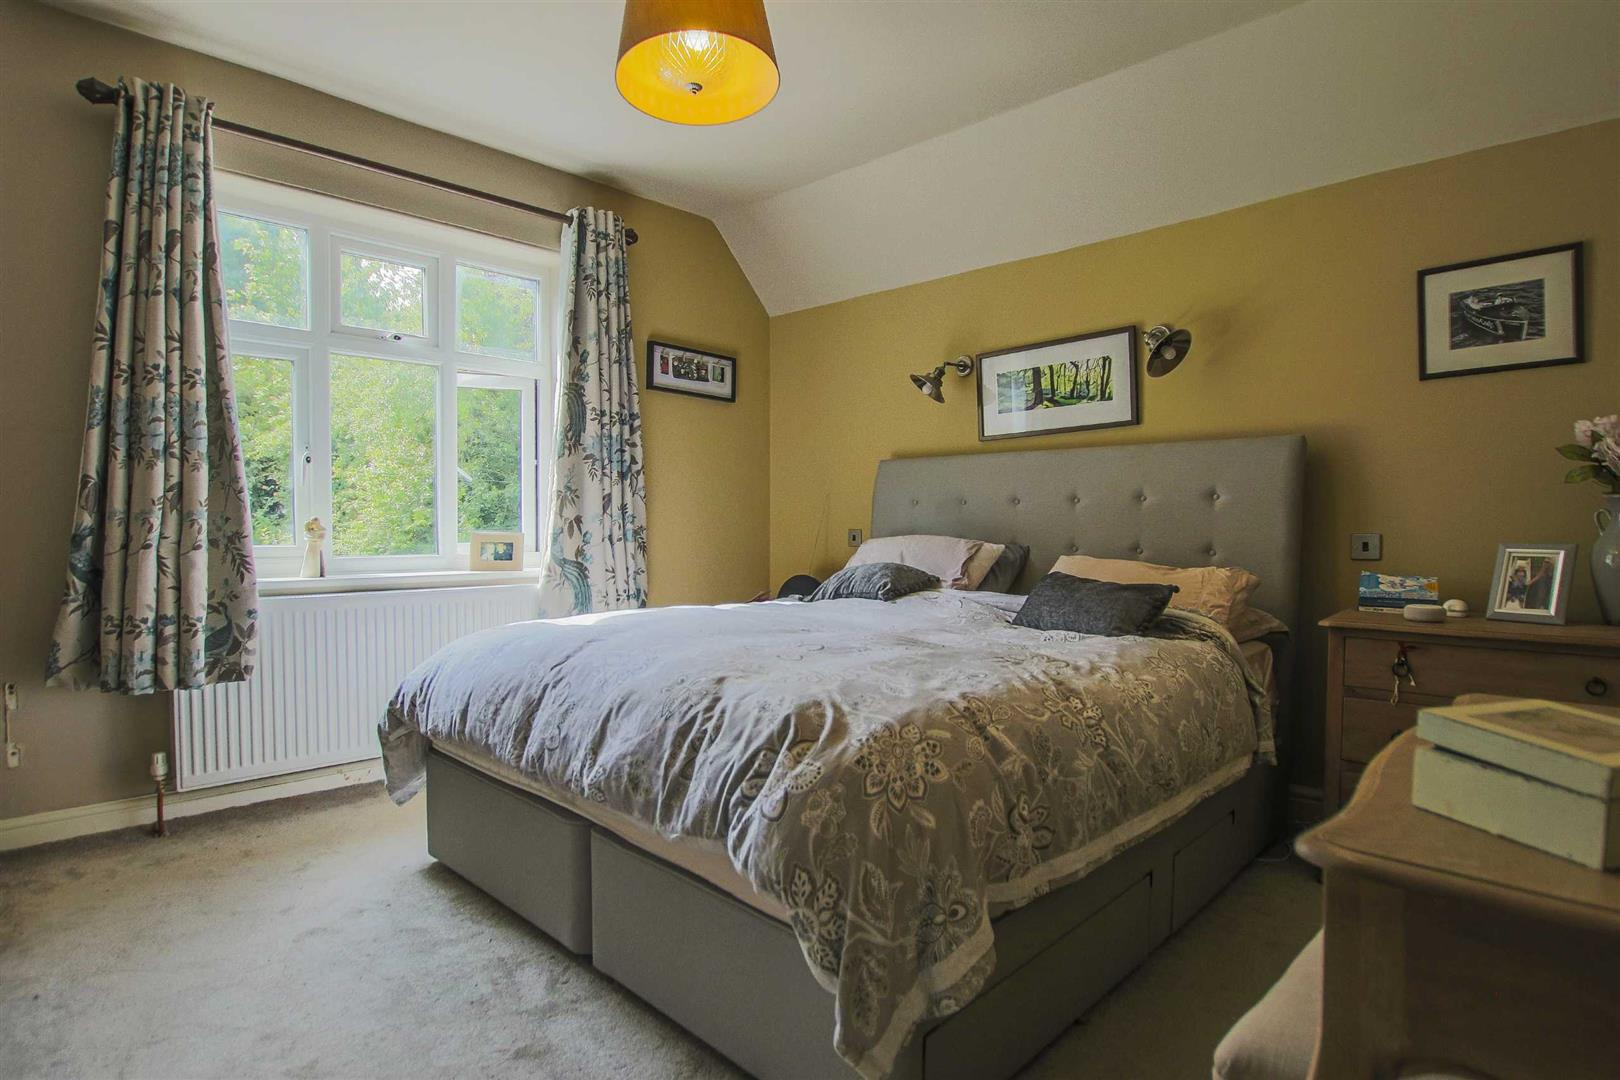 4 Bedroom Detached House For Sale - Image 8